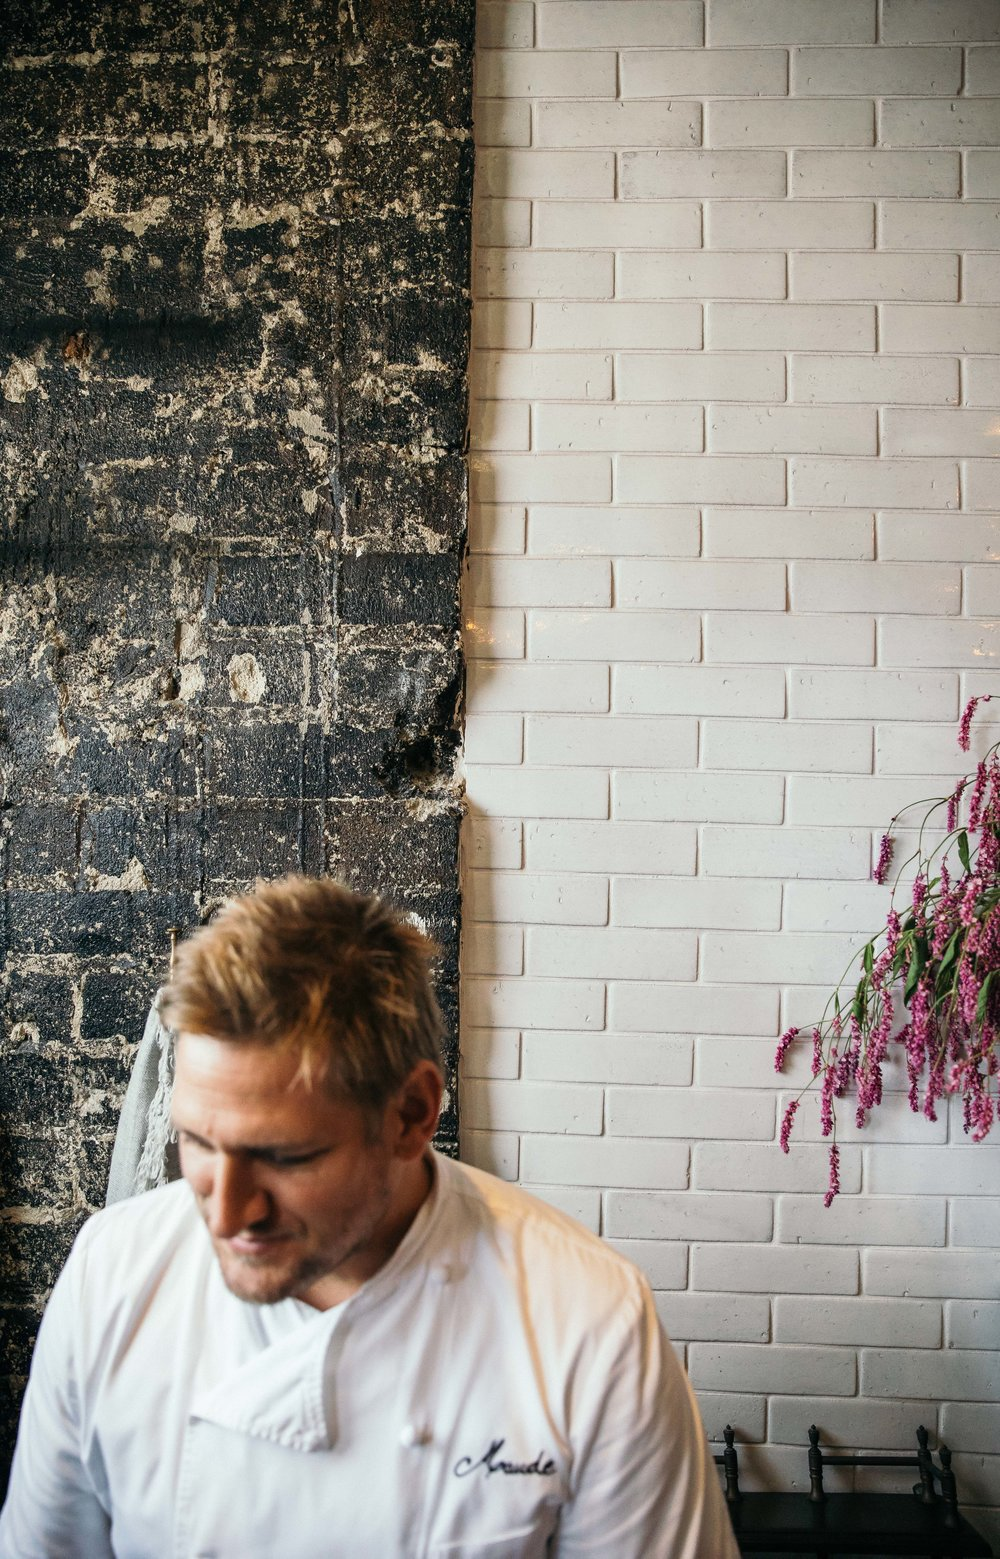 Chef Curtis Stone // Maude // Los Angeles